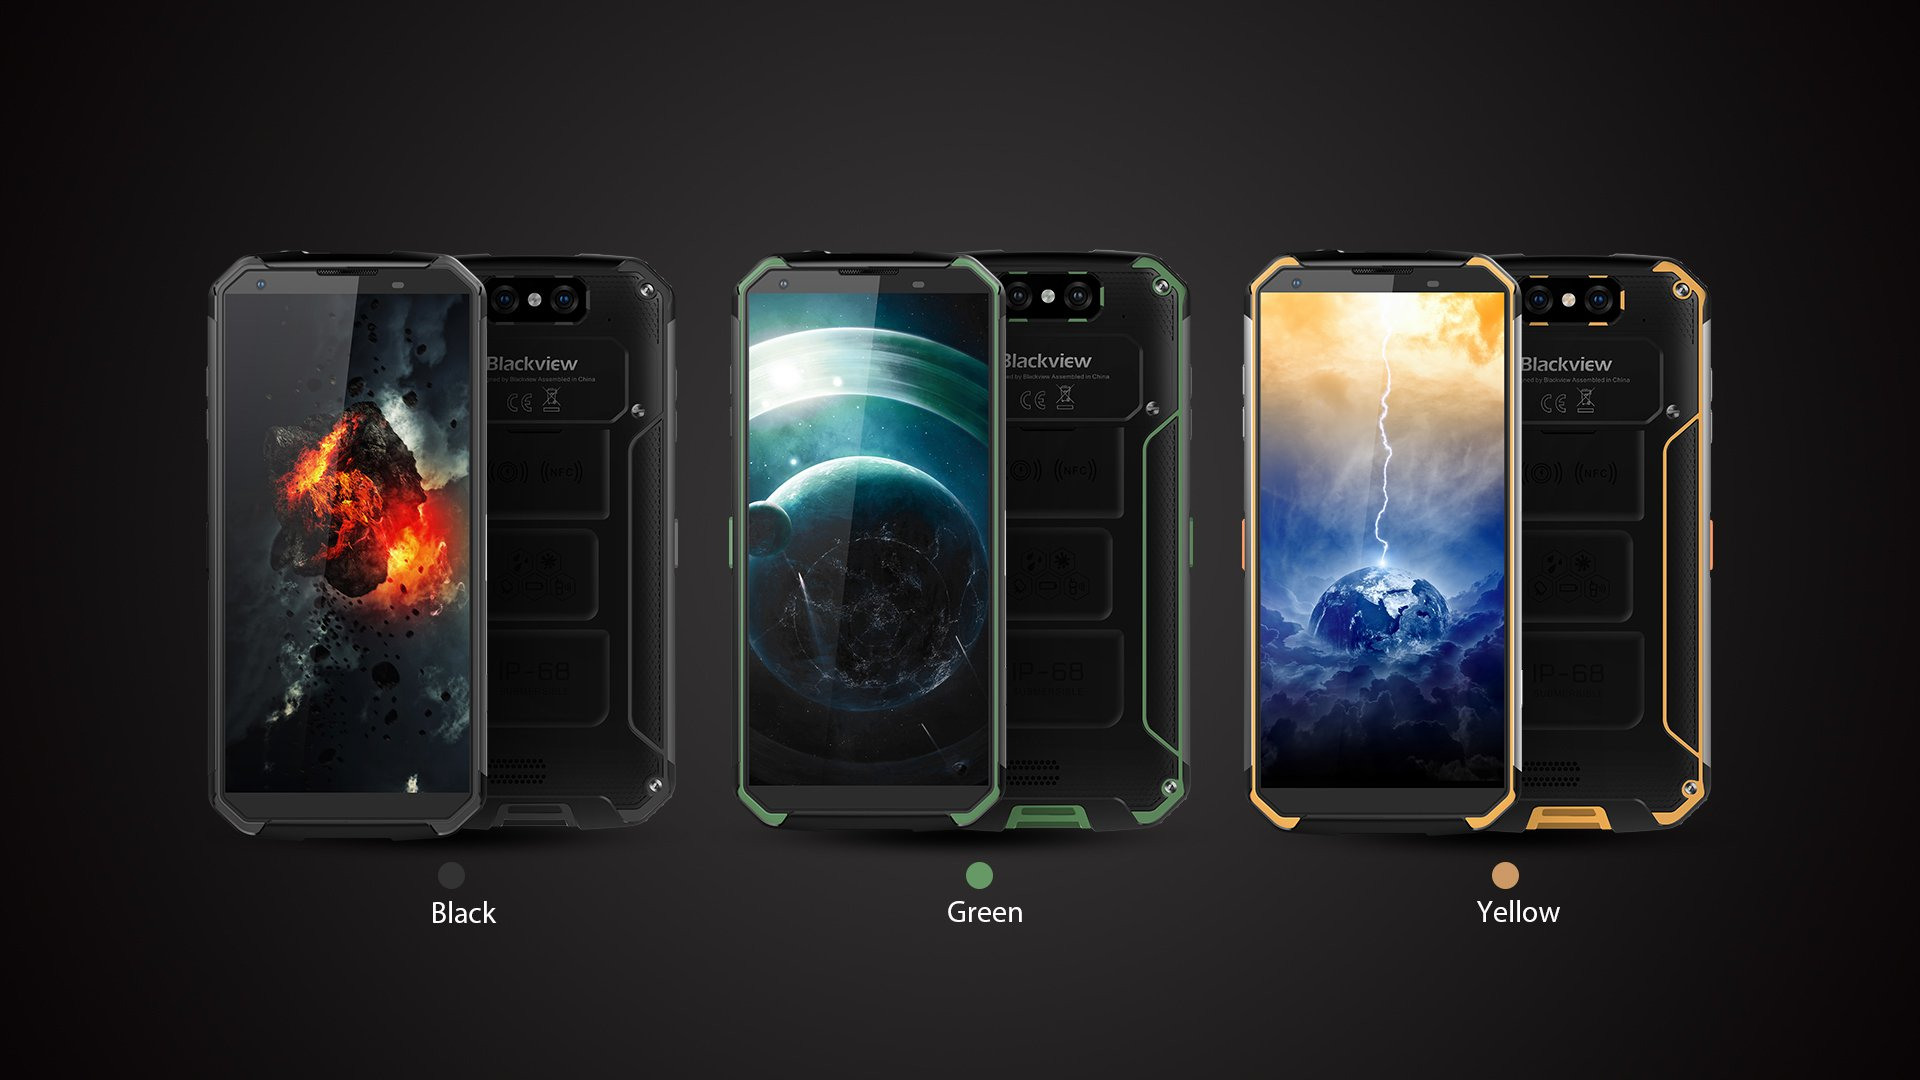 Blackview's BV9500: most amazing and uncrackable smartphone - Inceptive Mind